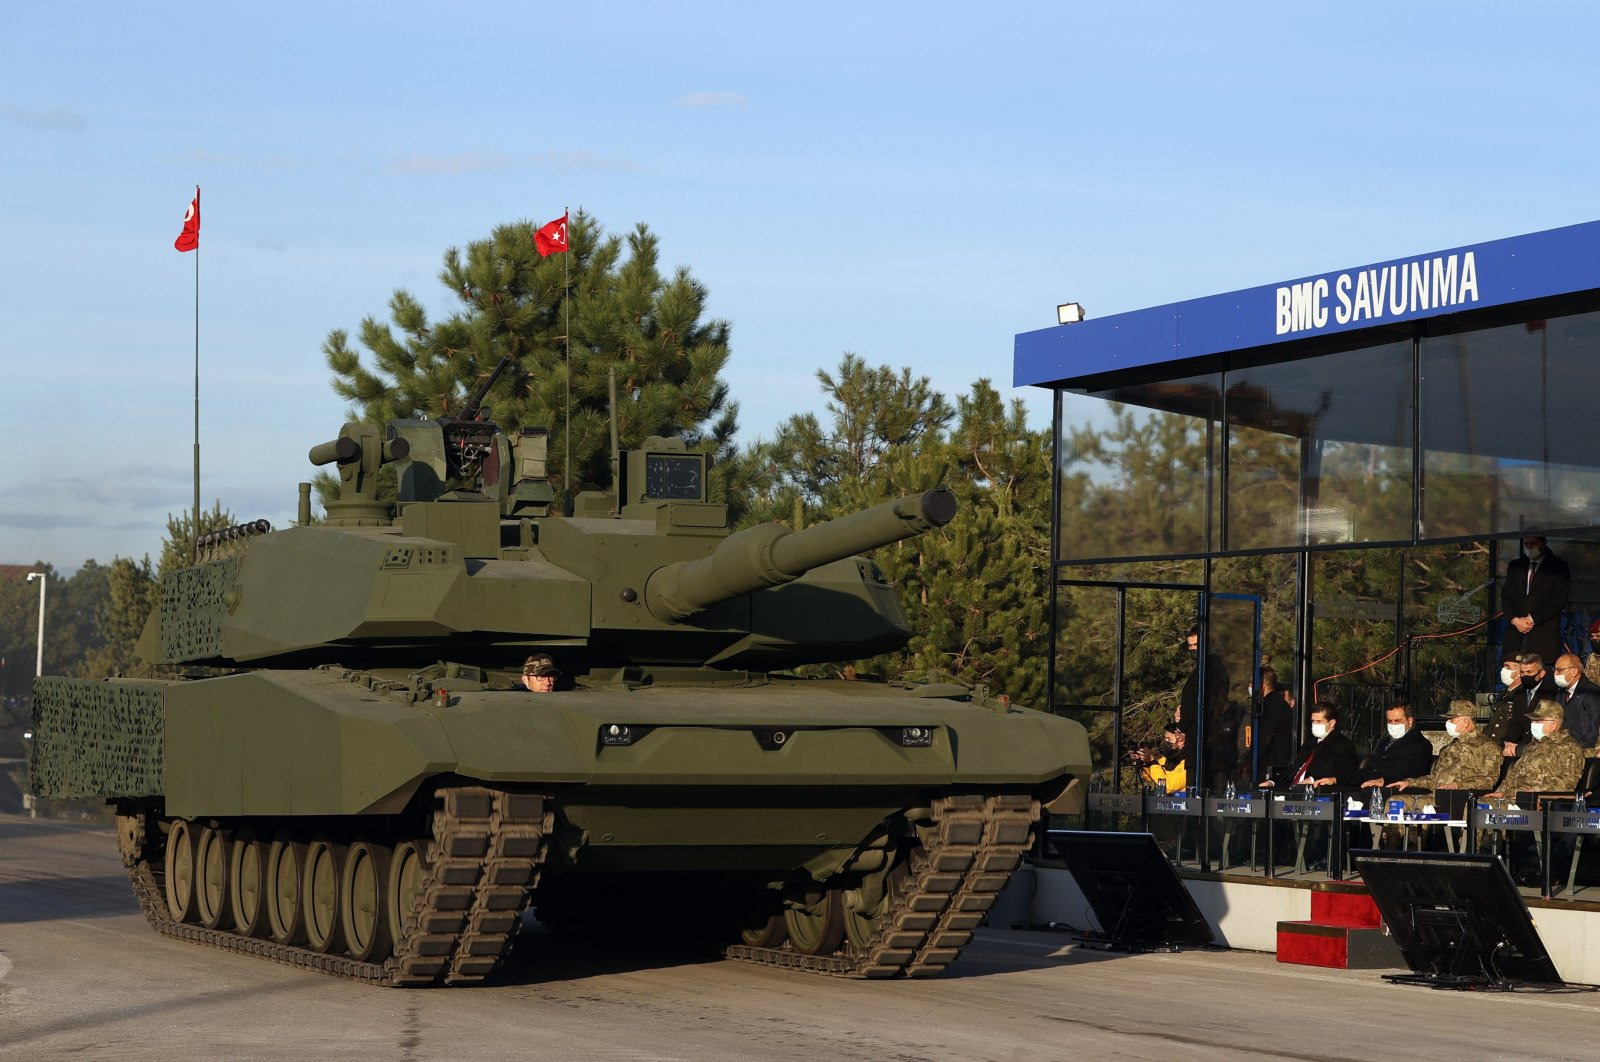 A Leopard 2A4 platform with the turret developed for Turkish Altay main battle tank mounted on top is being showcased at the Sakarya facility of leading land vehicle manufacturer BMC, in Sakarya, northwestern Turkey, Jan. 25, 2021. (DHA Photo)